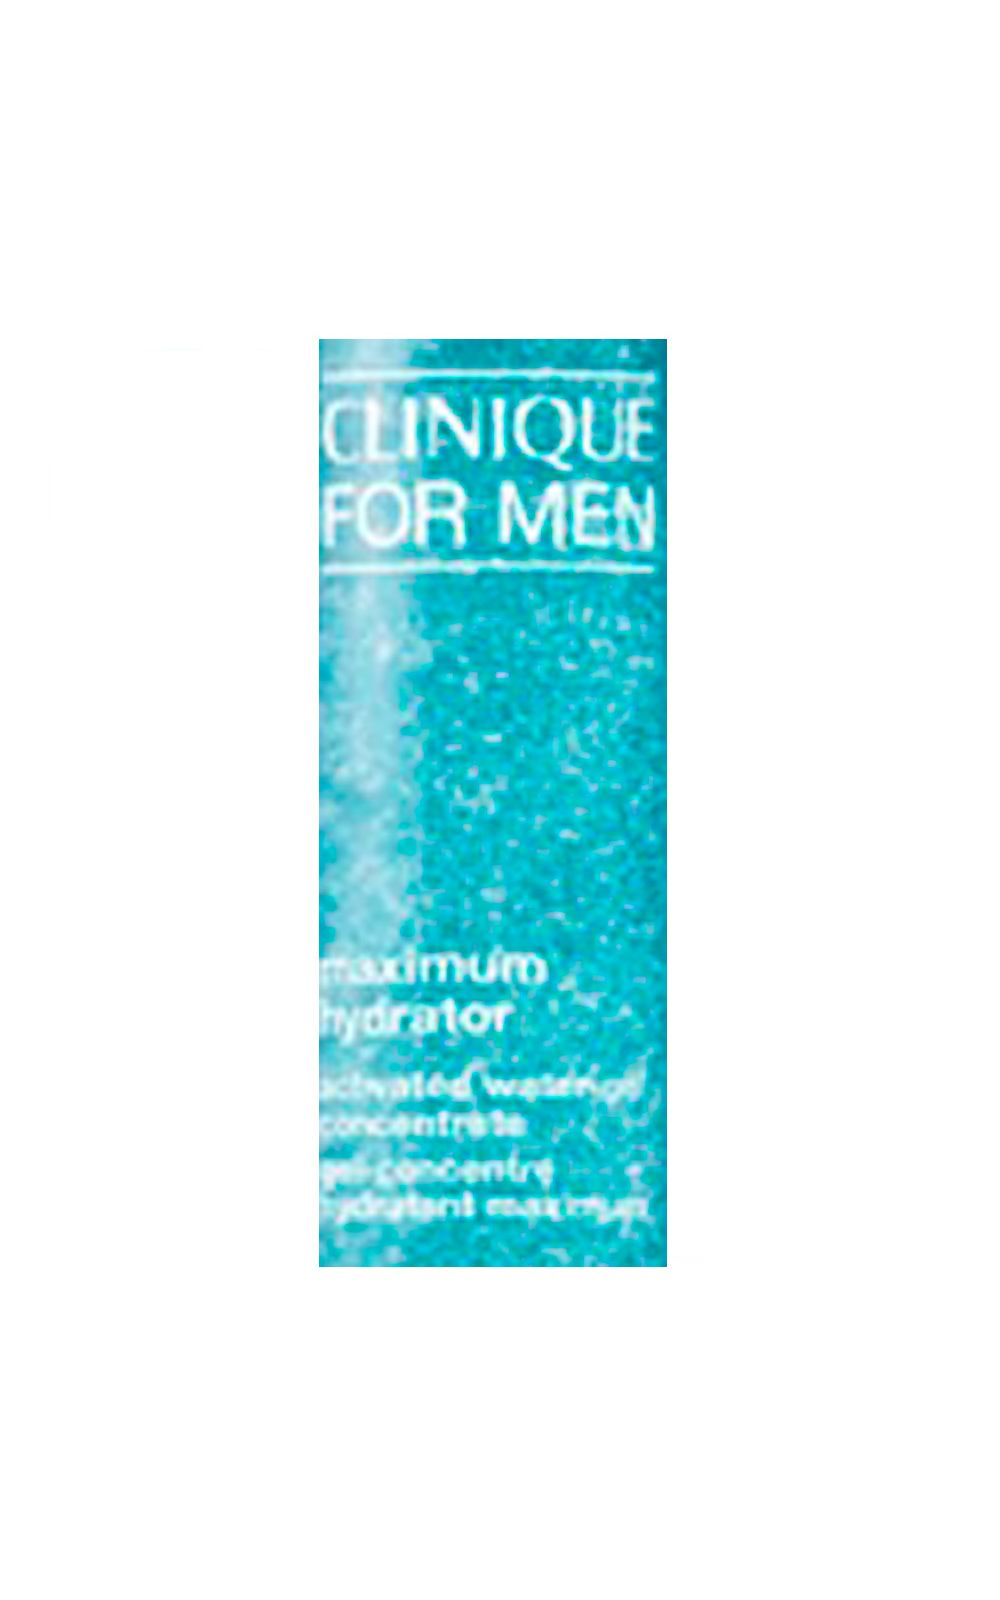 Foto 2 - Hidratante Facial Clinique - Clinique For Men Maximum Hydrator Actived Water Gel - 48ml